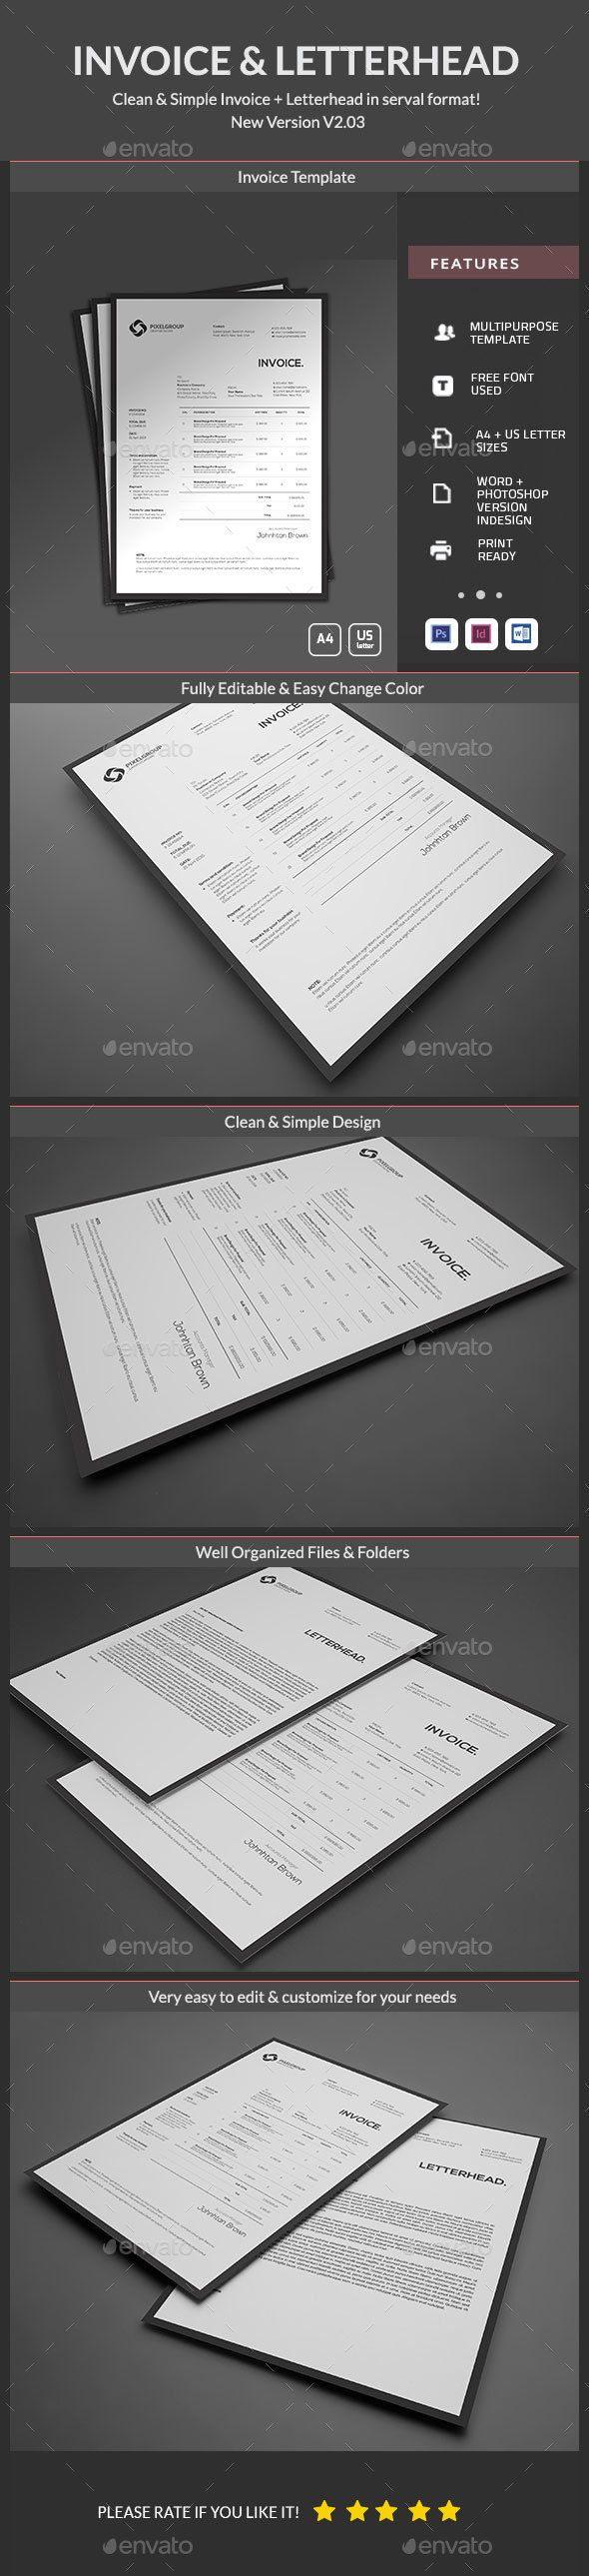 Invoice Template PSD, InDesign INDD, MS Word - A4 and US Letter